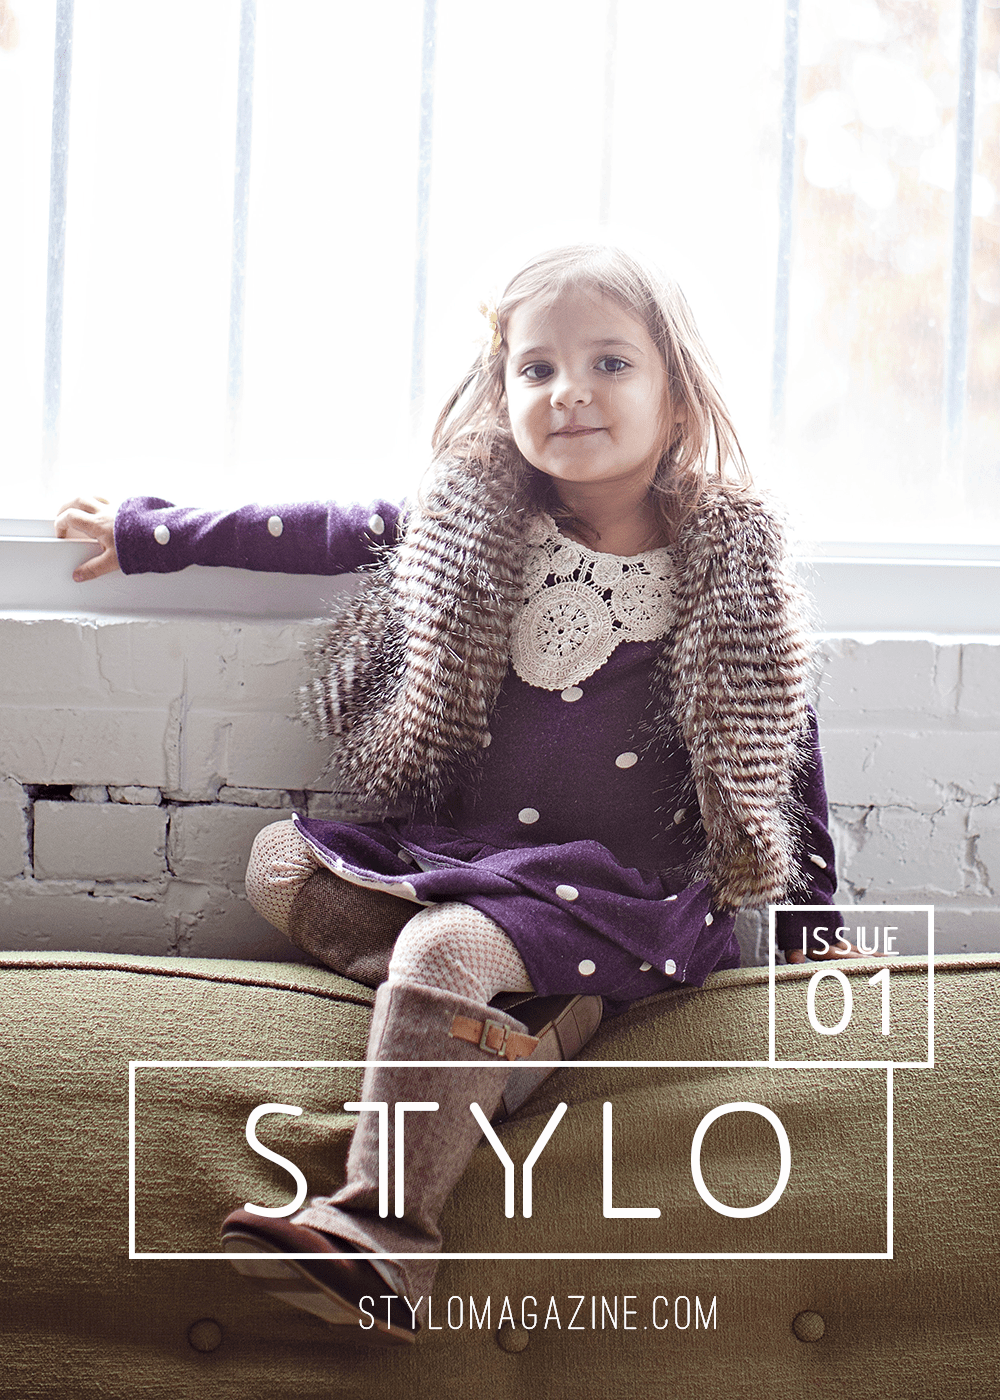 STYLO - brand new modern Kids Sewing Pattern Magazine